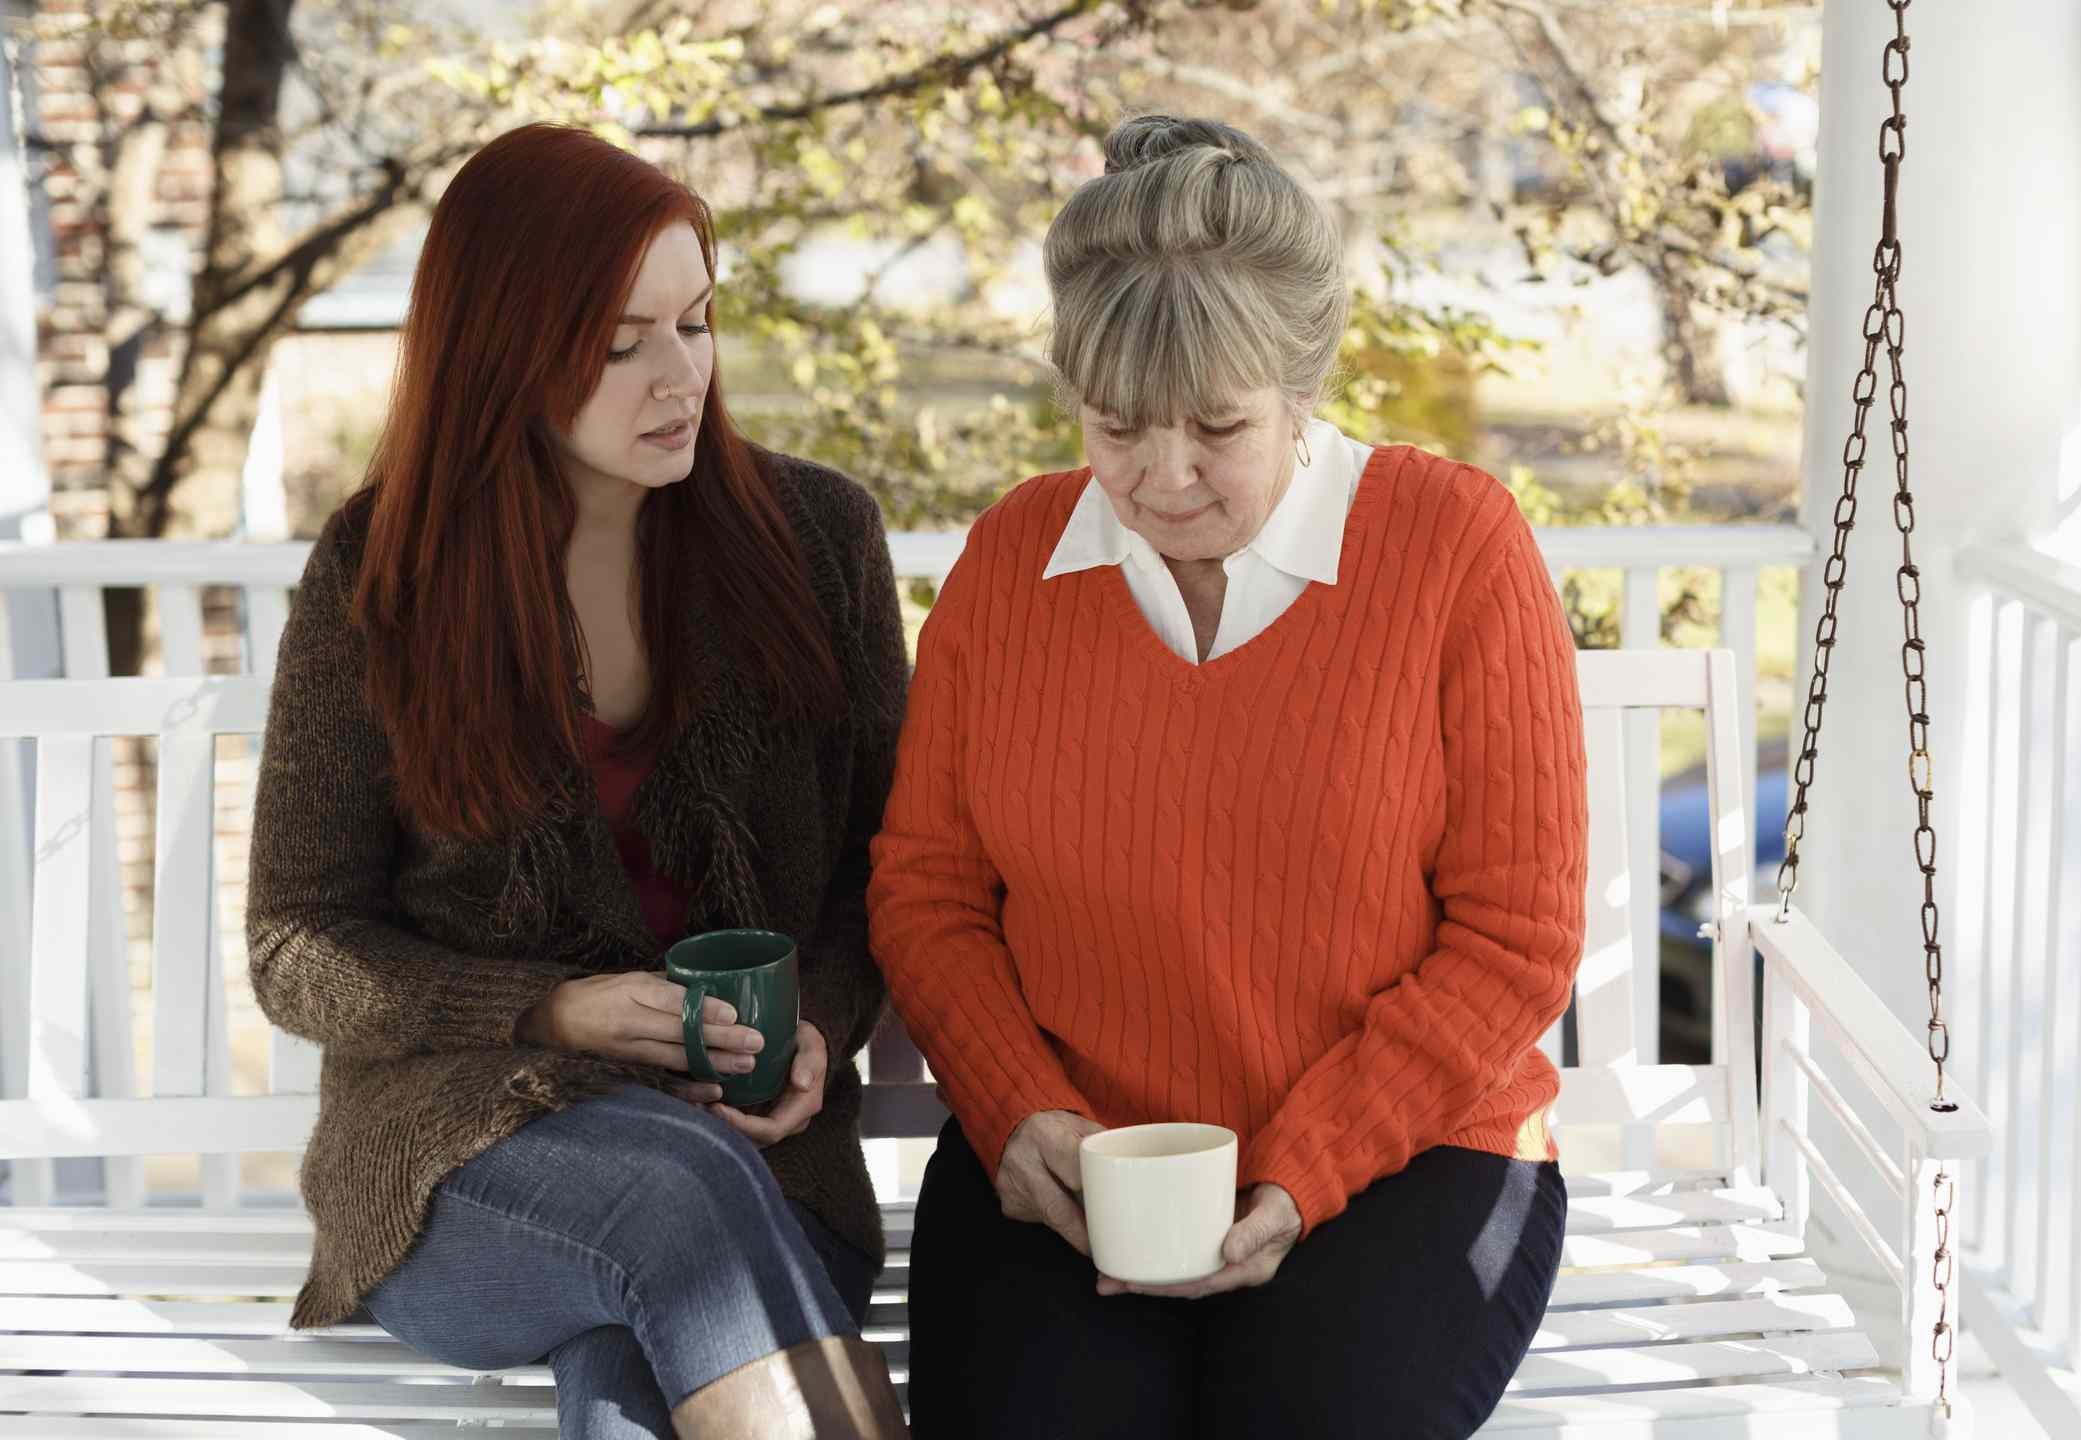 Women having serious discussion on porch swing